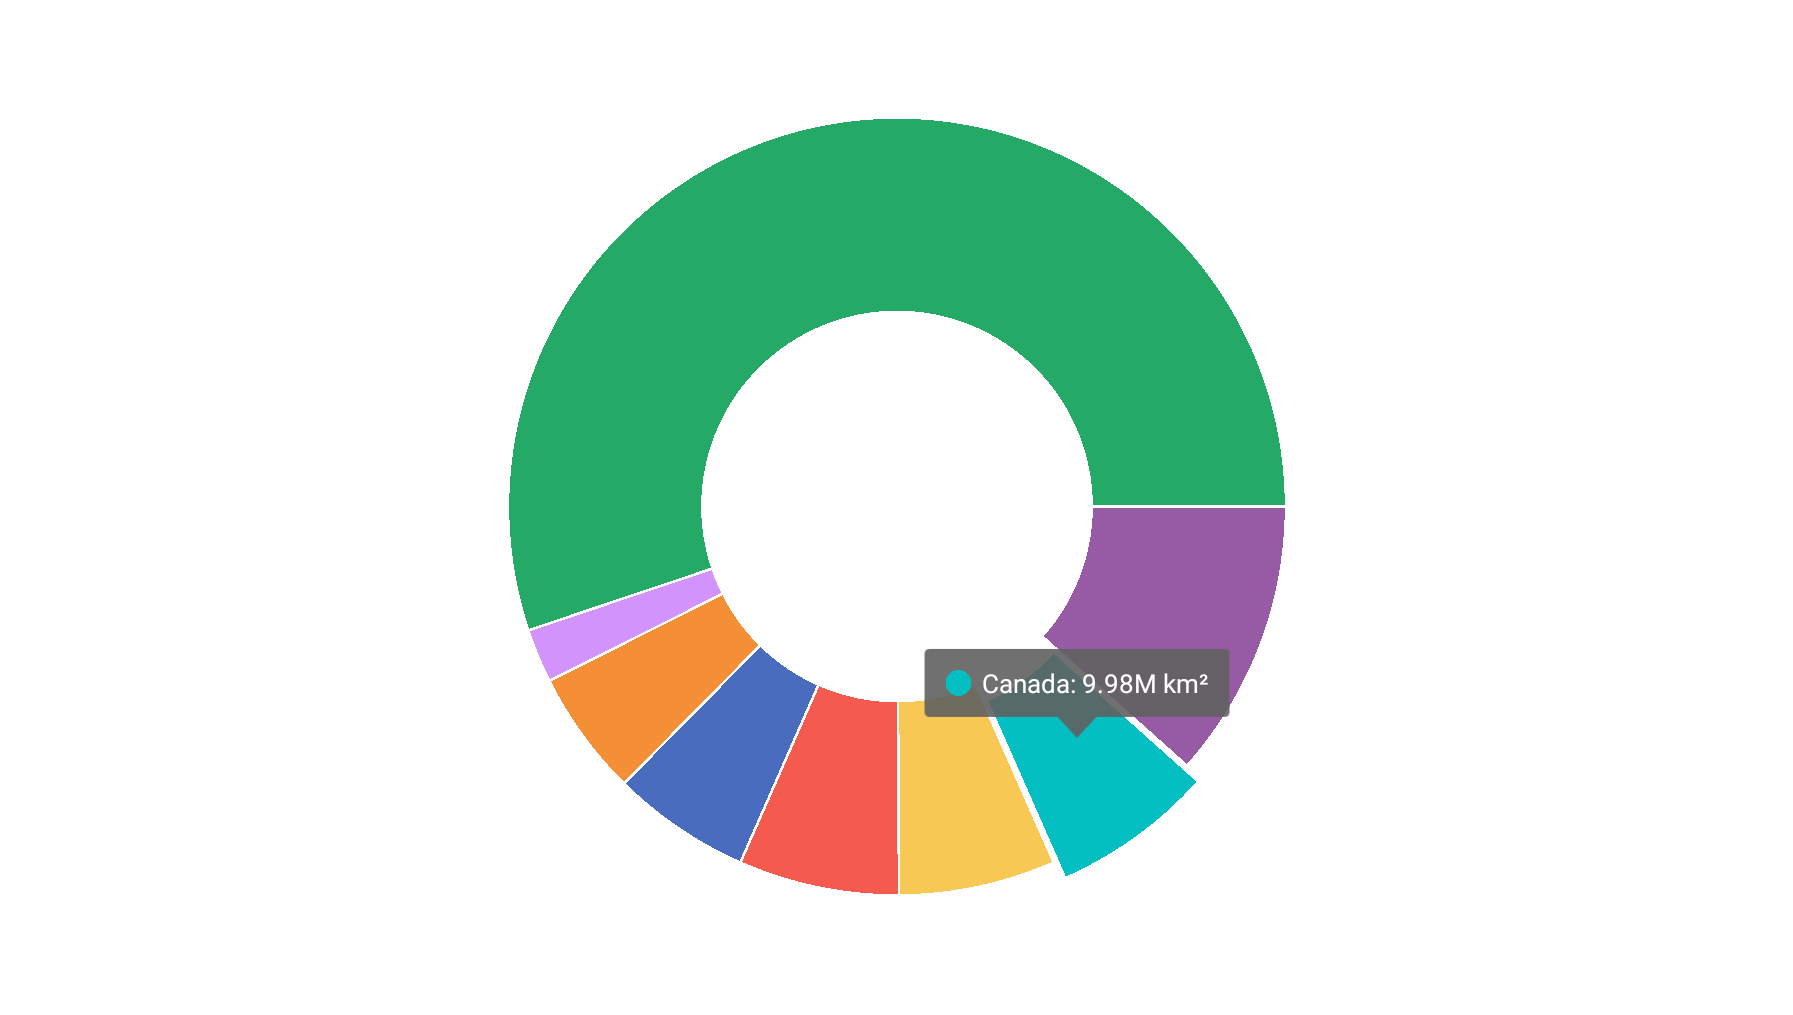 Pie Chart Tooltips